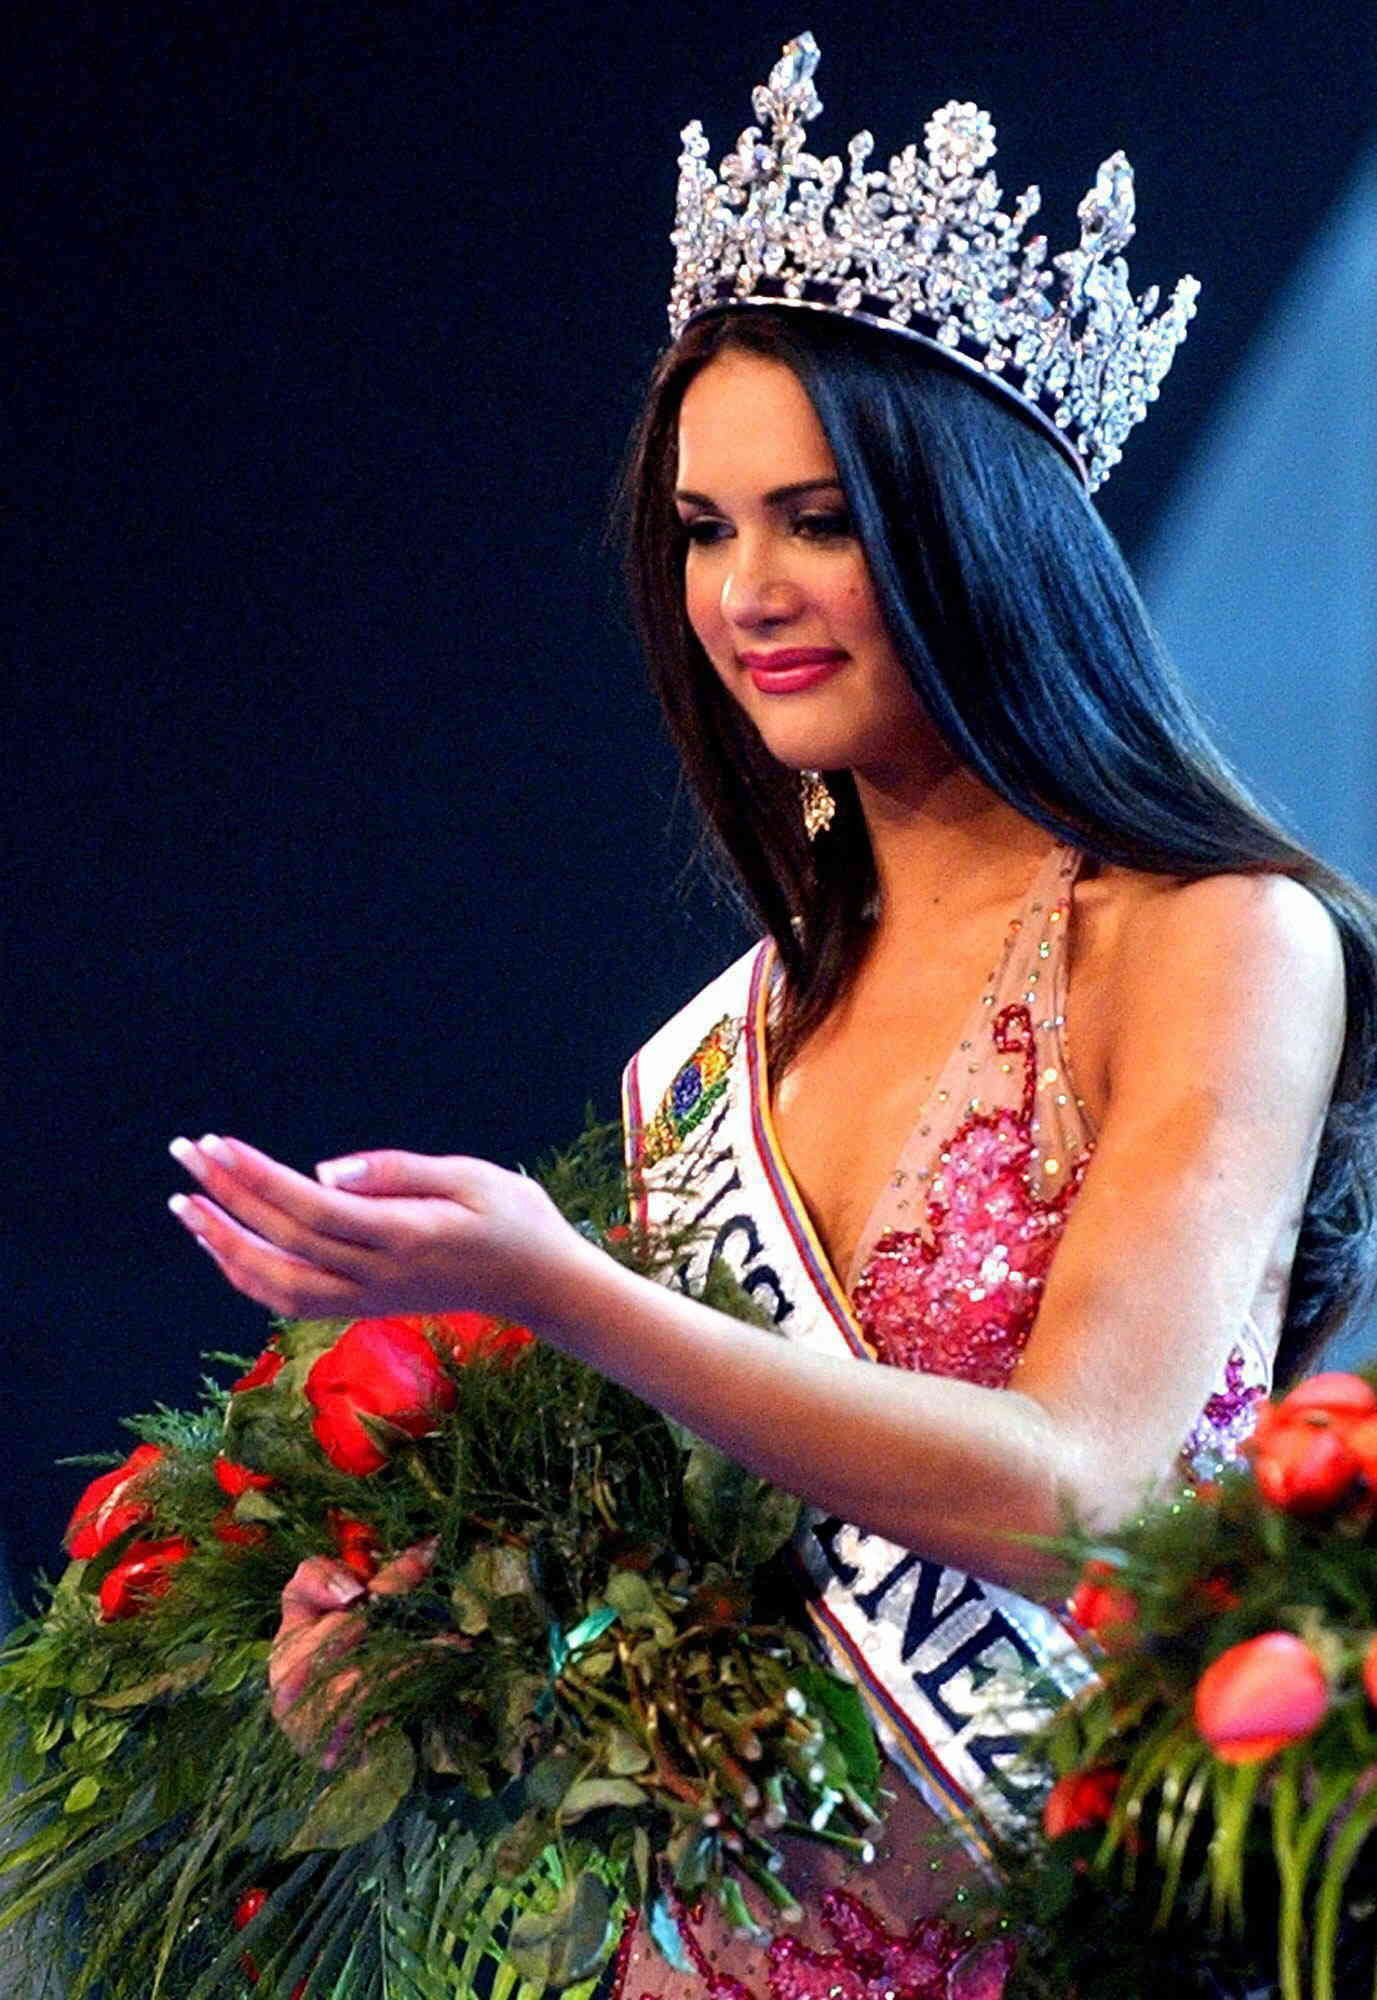 monica spear, top 5 de miss universe 2005. † - Página 4 Monica23